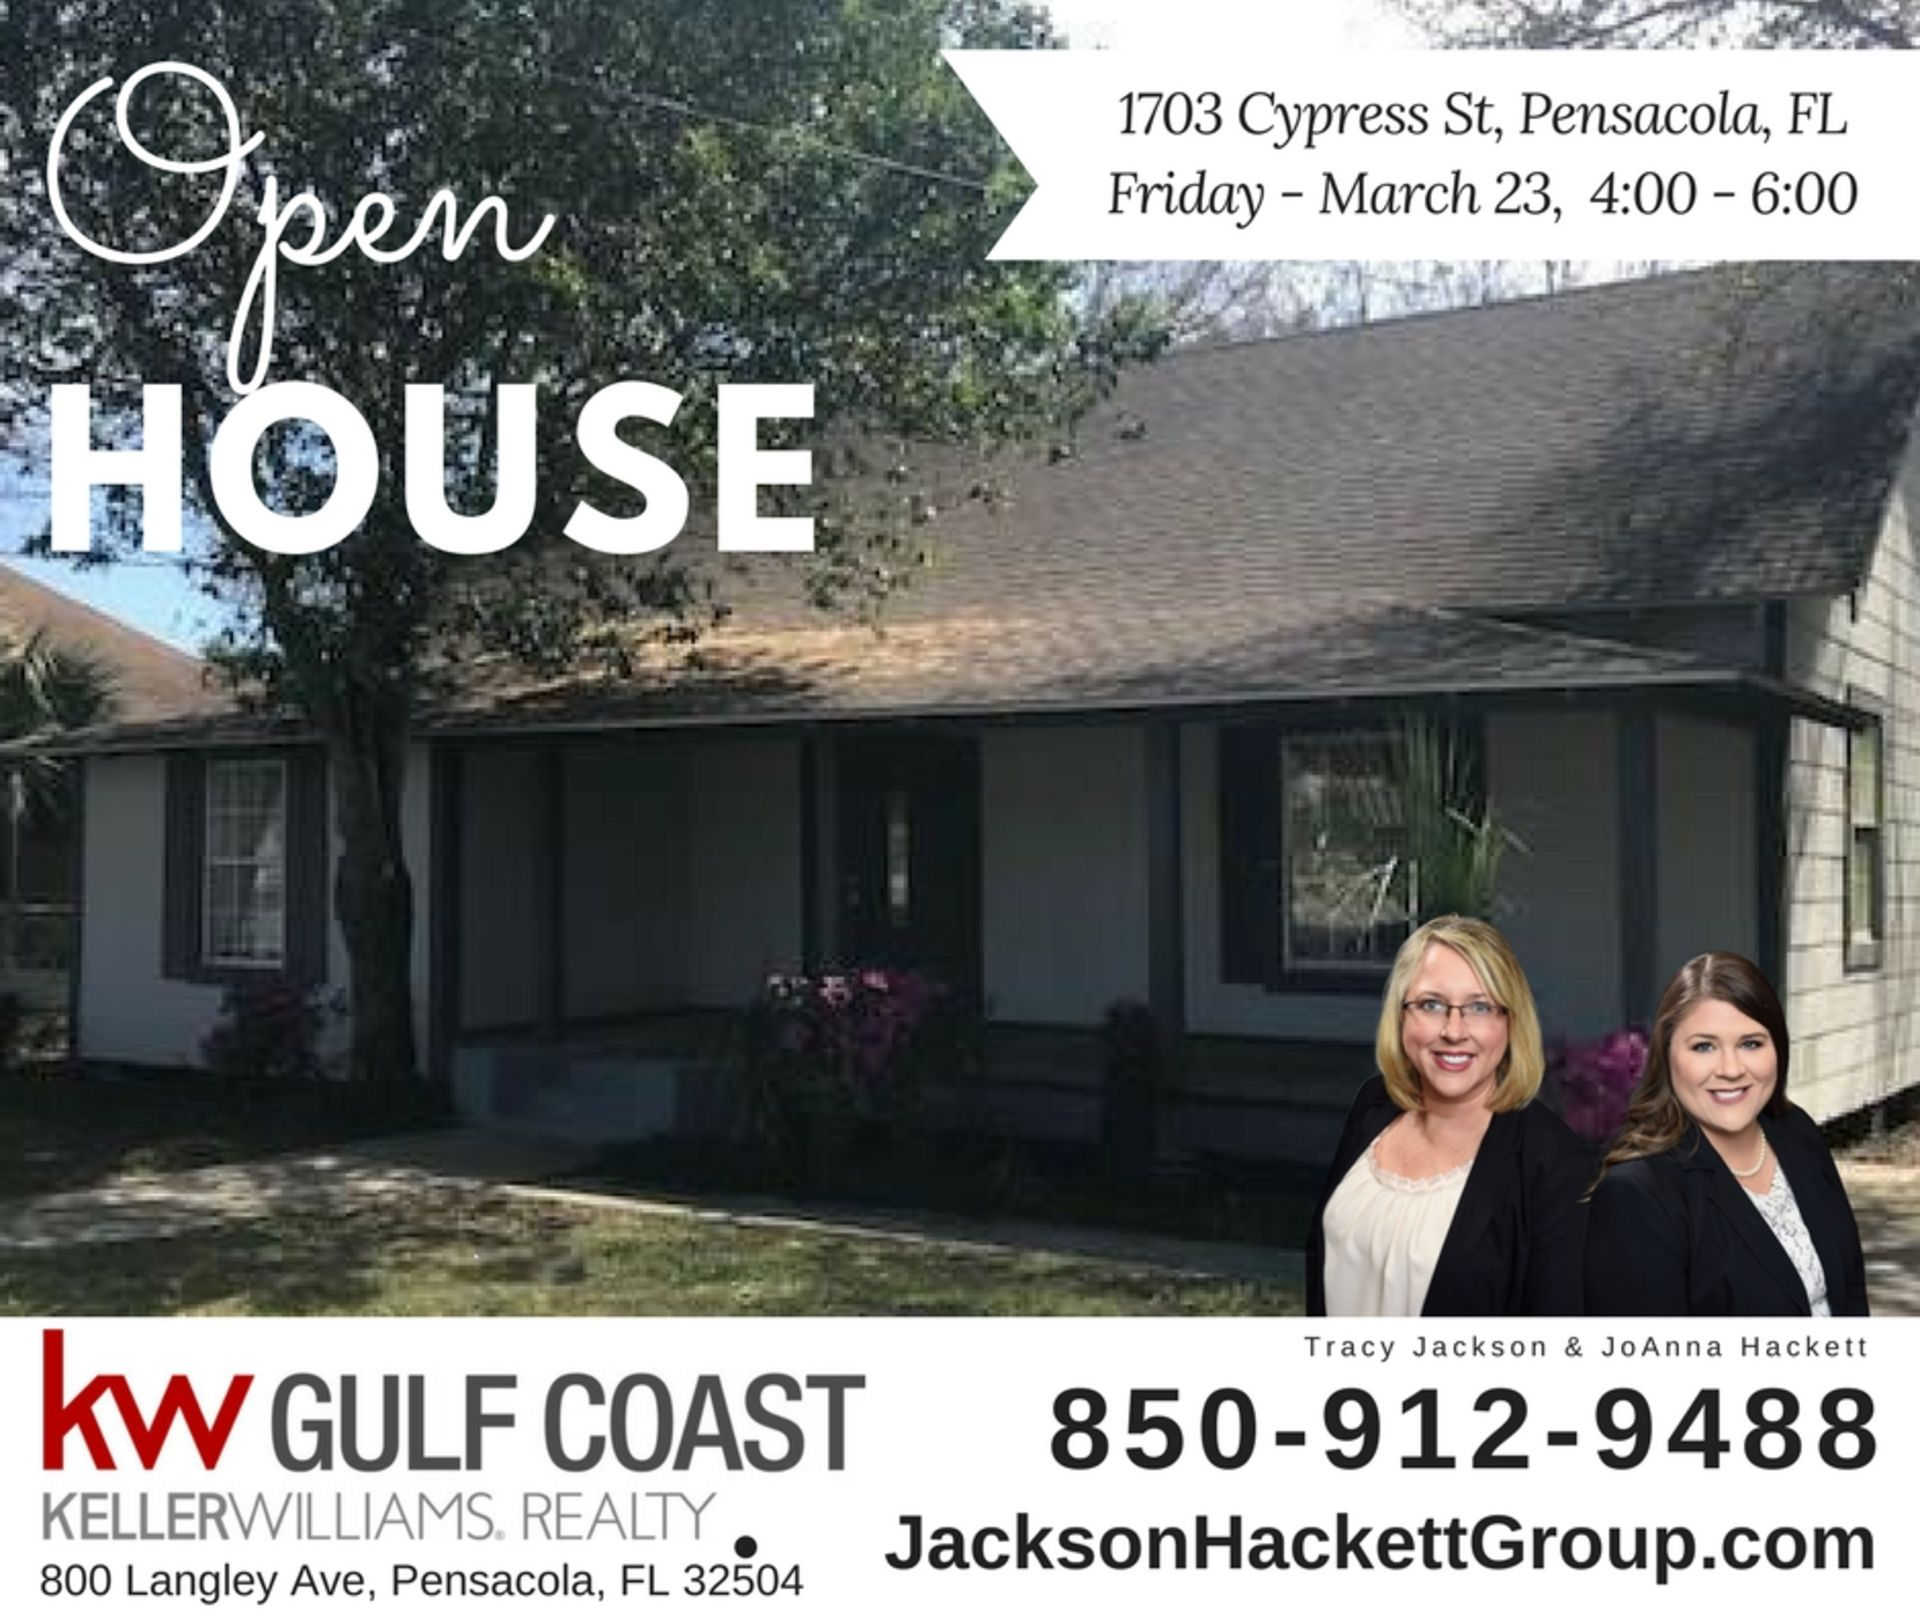 OPEN HOUSE 1703 Cypress St Pensacola